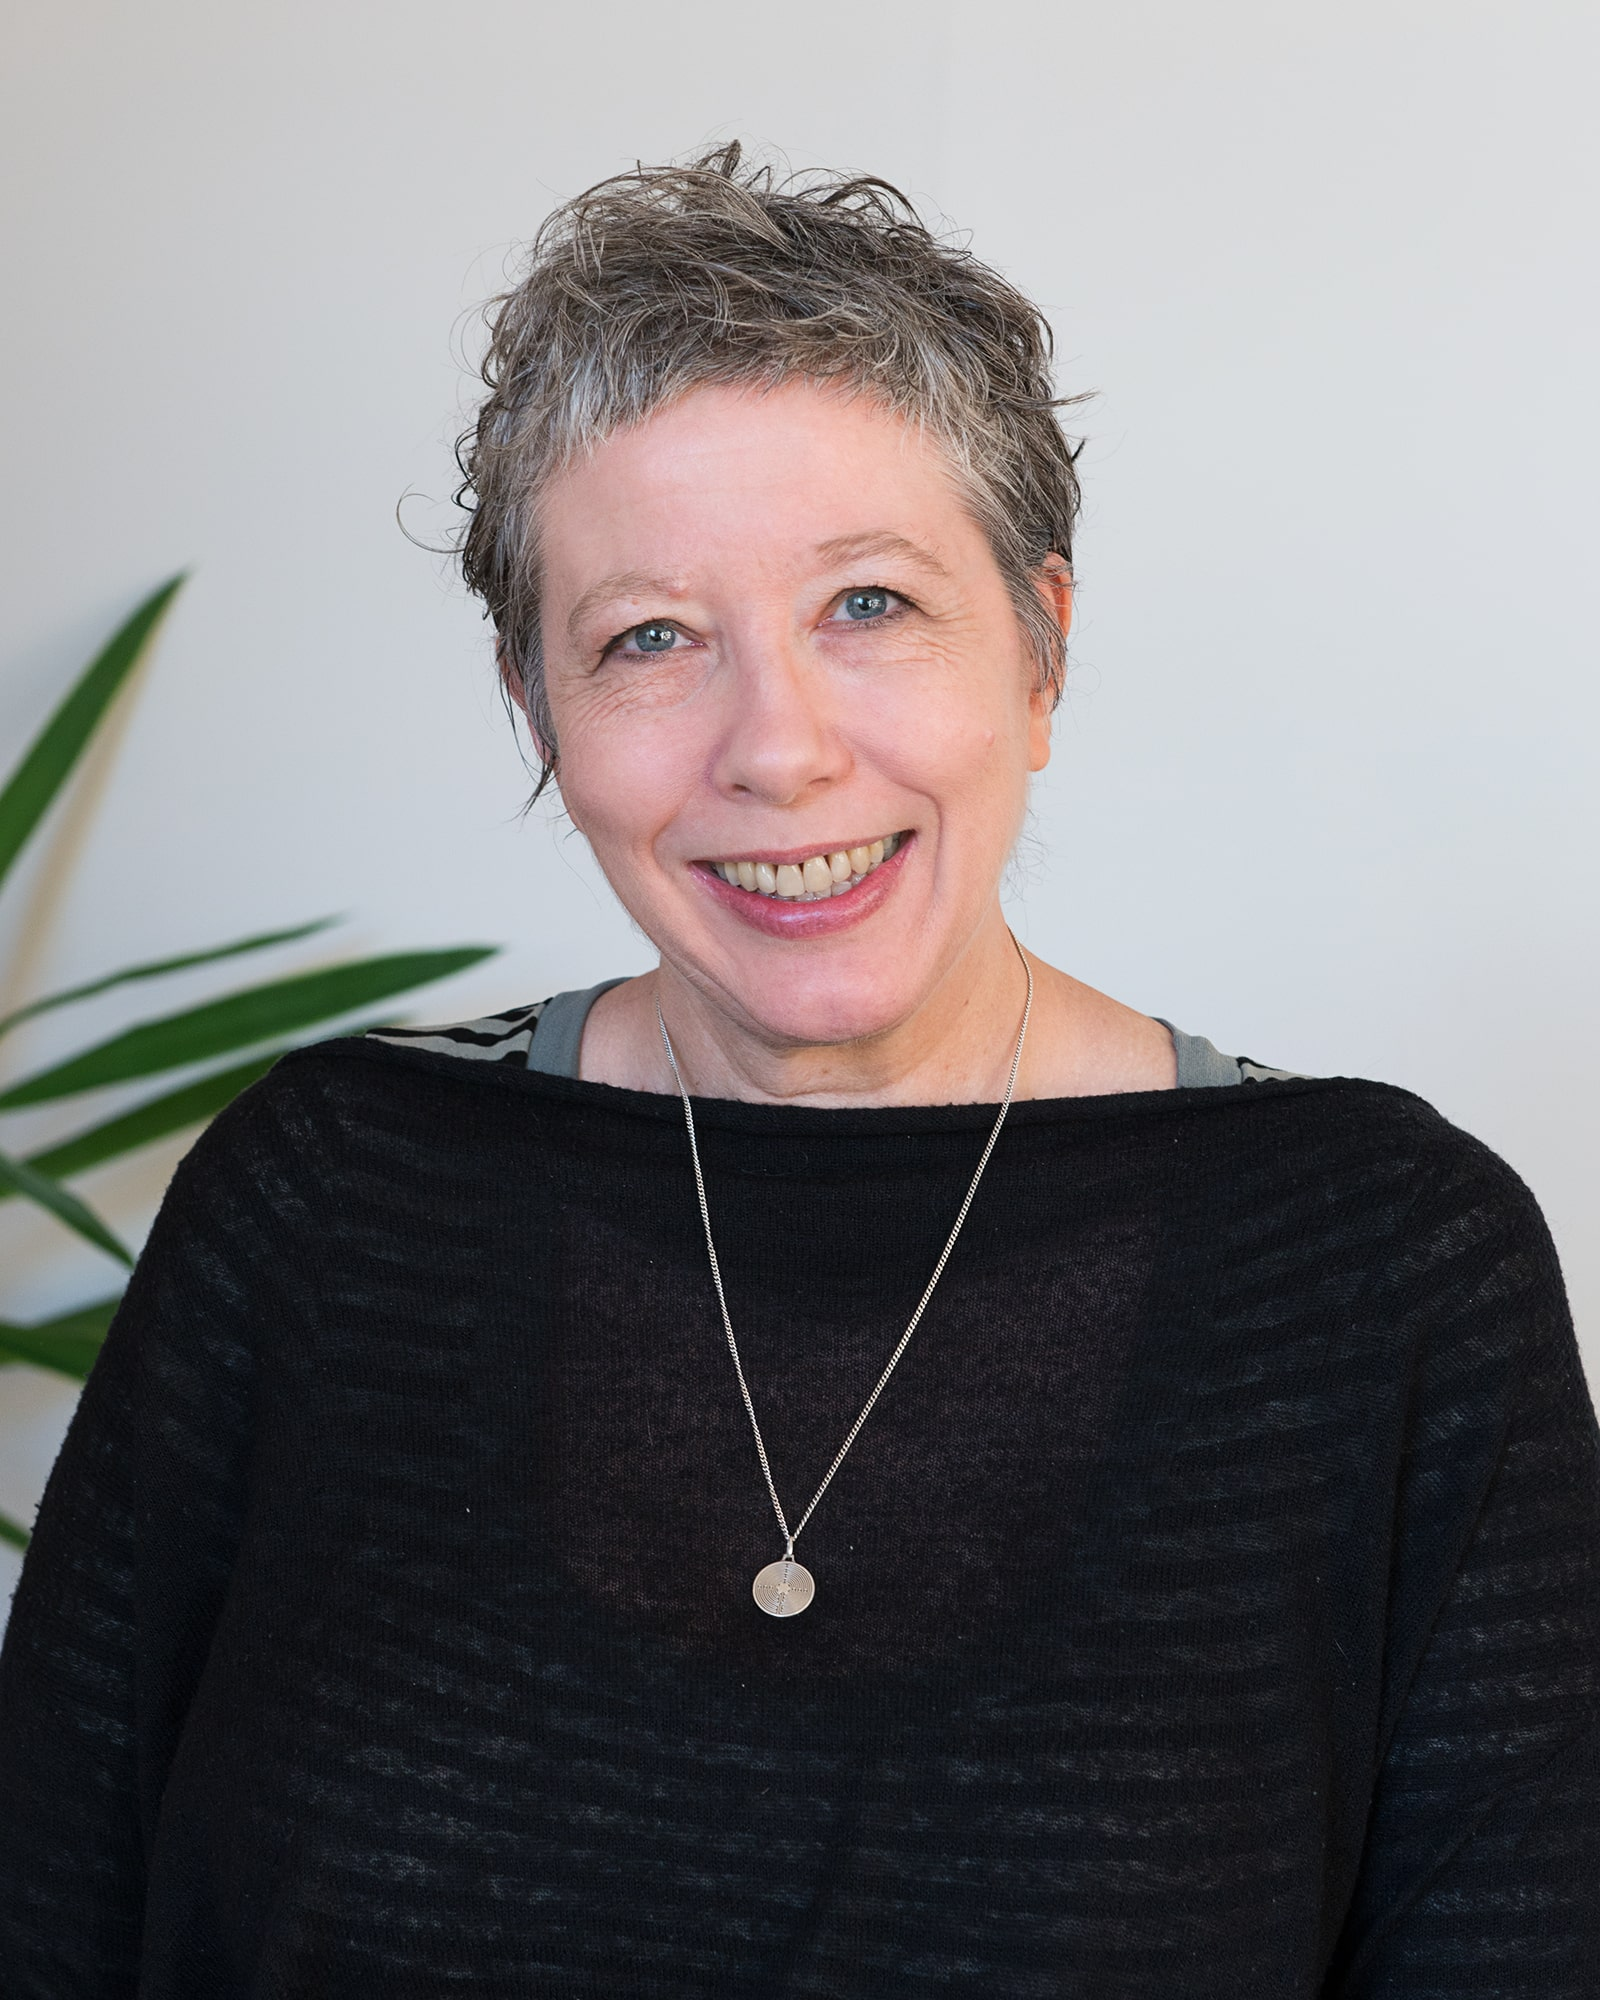 Hi, my name's Amanda and I am an artist and psychotherapist based in Melbourne. - For many years, I worked in Universities, teaching (and practicing) painting and drawing. At the age of 48 (!) I decided to retrain in social work with the aim of helping people recover from trauma using counselling and art therapy.